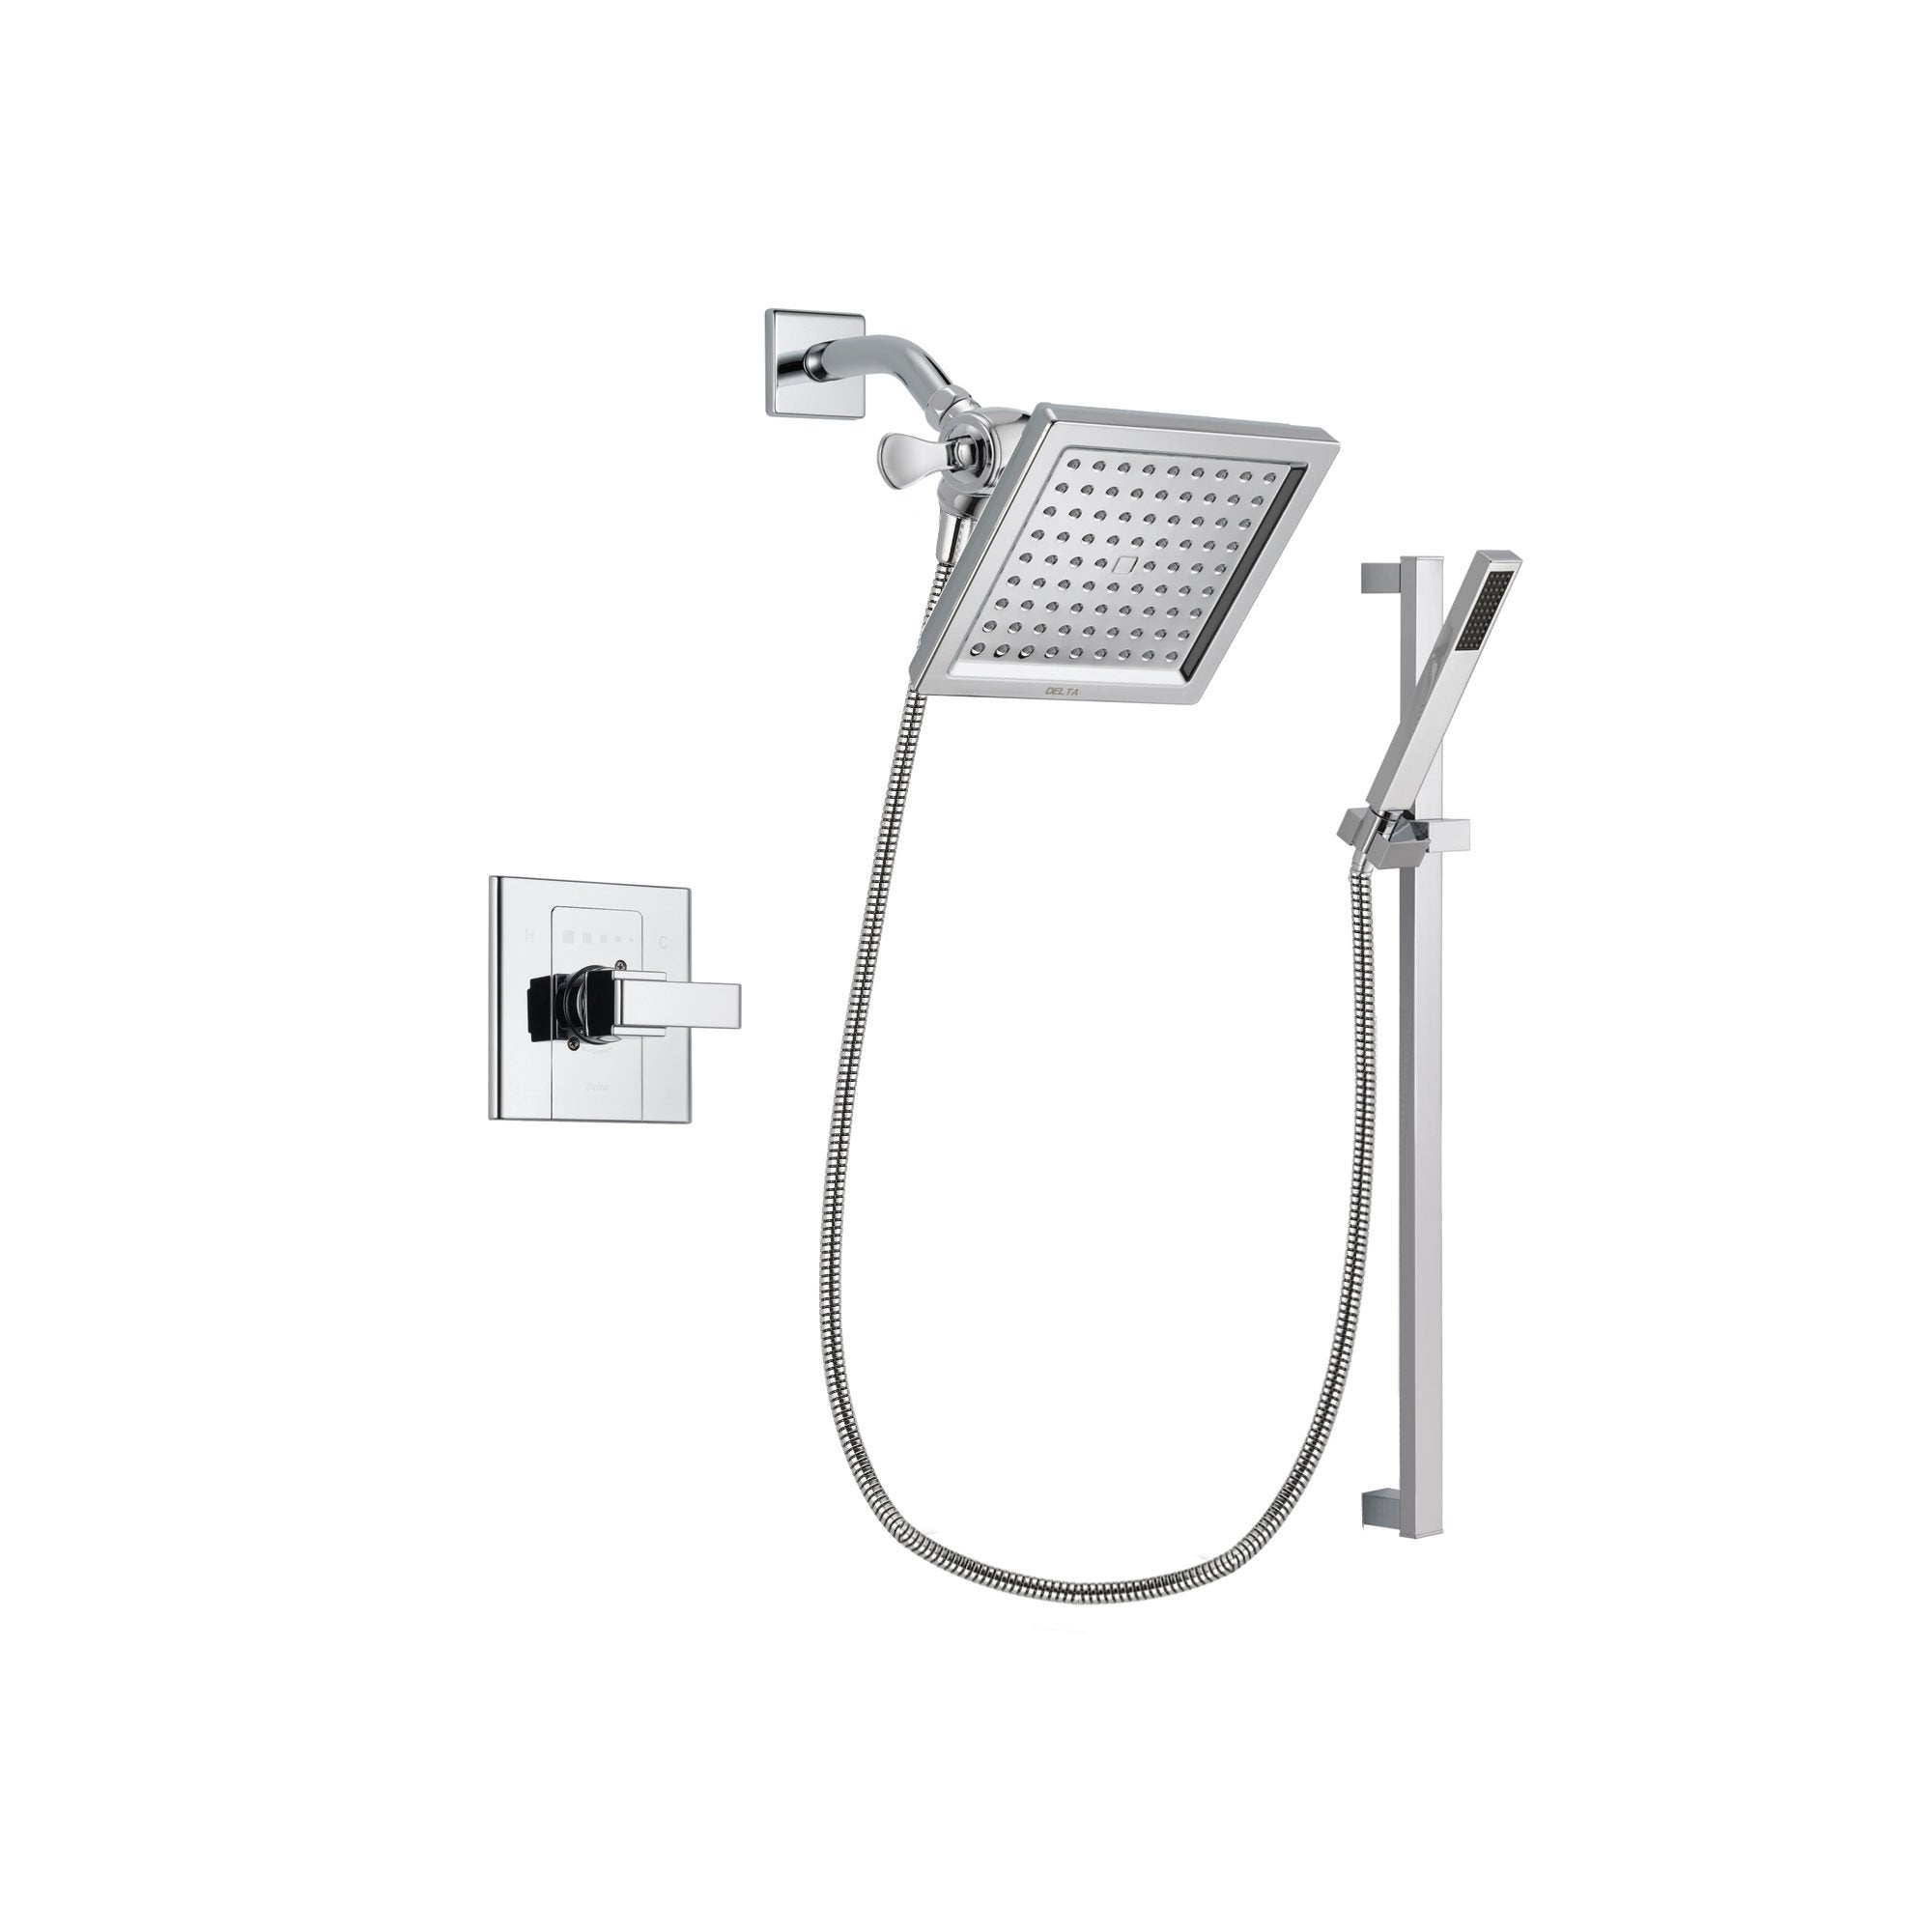 Delta Arzo Chrome Finish Shower Faucet System Package with 6.5-inch Square Rain Showerhead and Modern Square Wall Mount Slide Bar with Handheld Shower Spray Includes Rough-in Valve DSP0220V